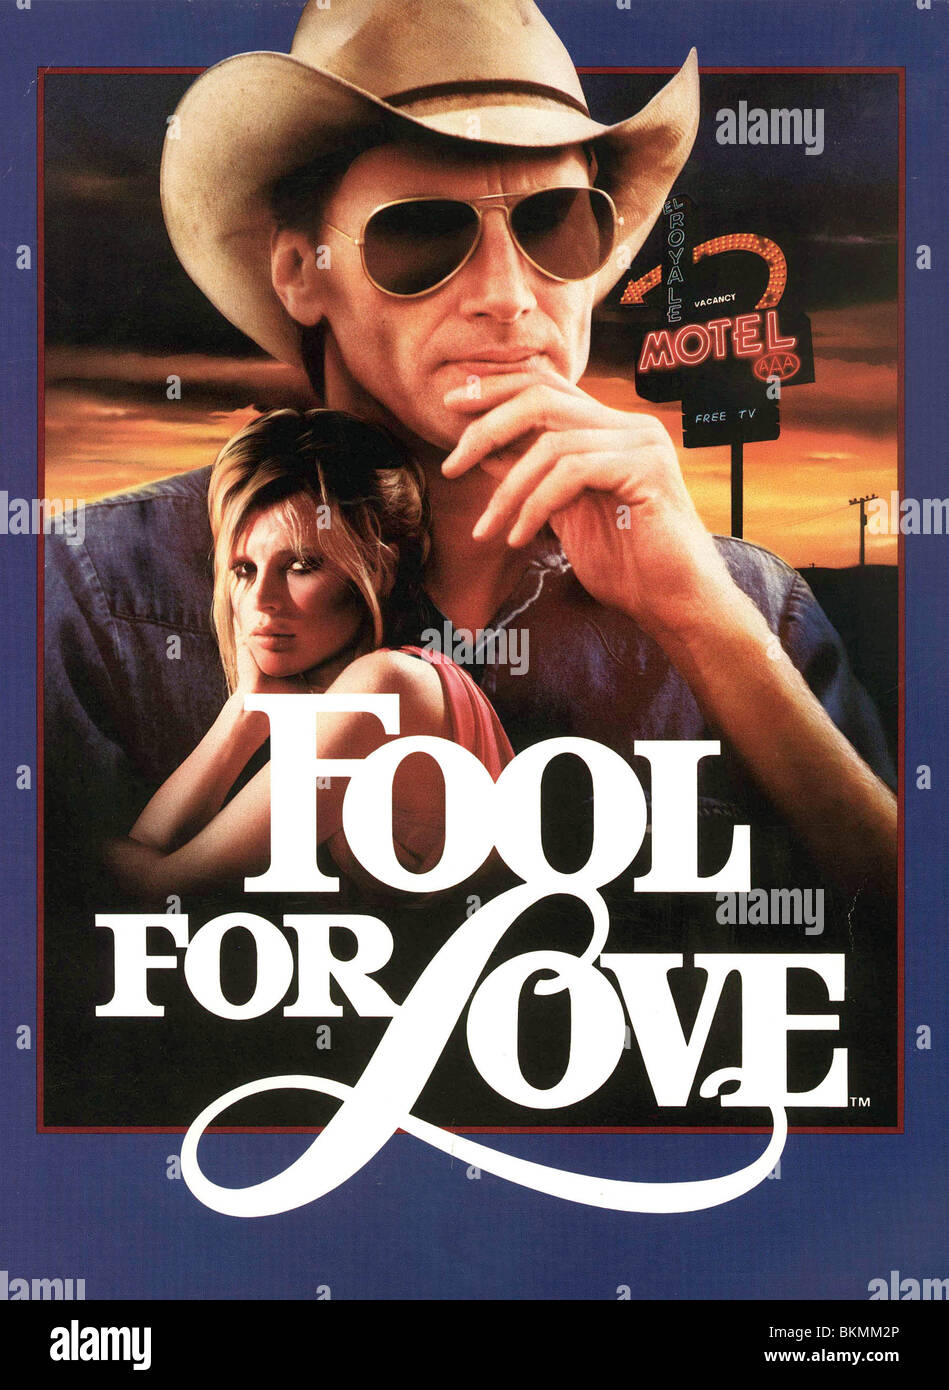 FOOL FOR LOVE (1985) ROBERT ALTMAN (DIR) FFL 001 FOH